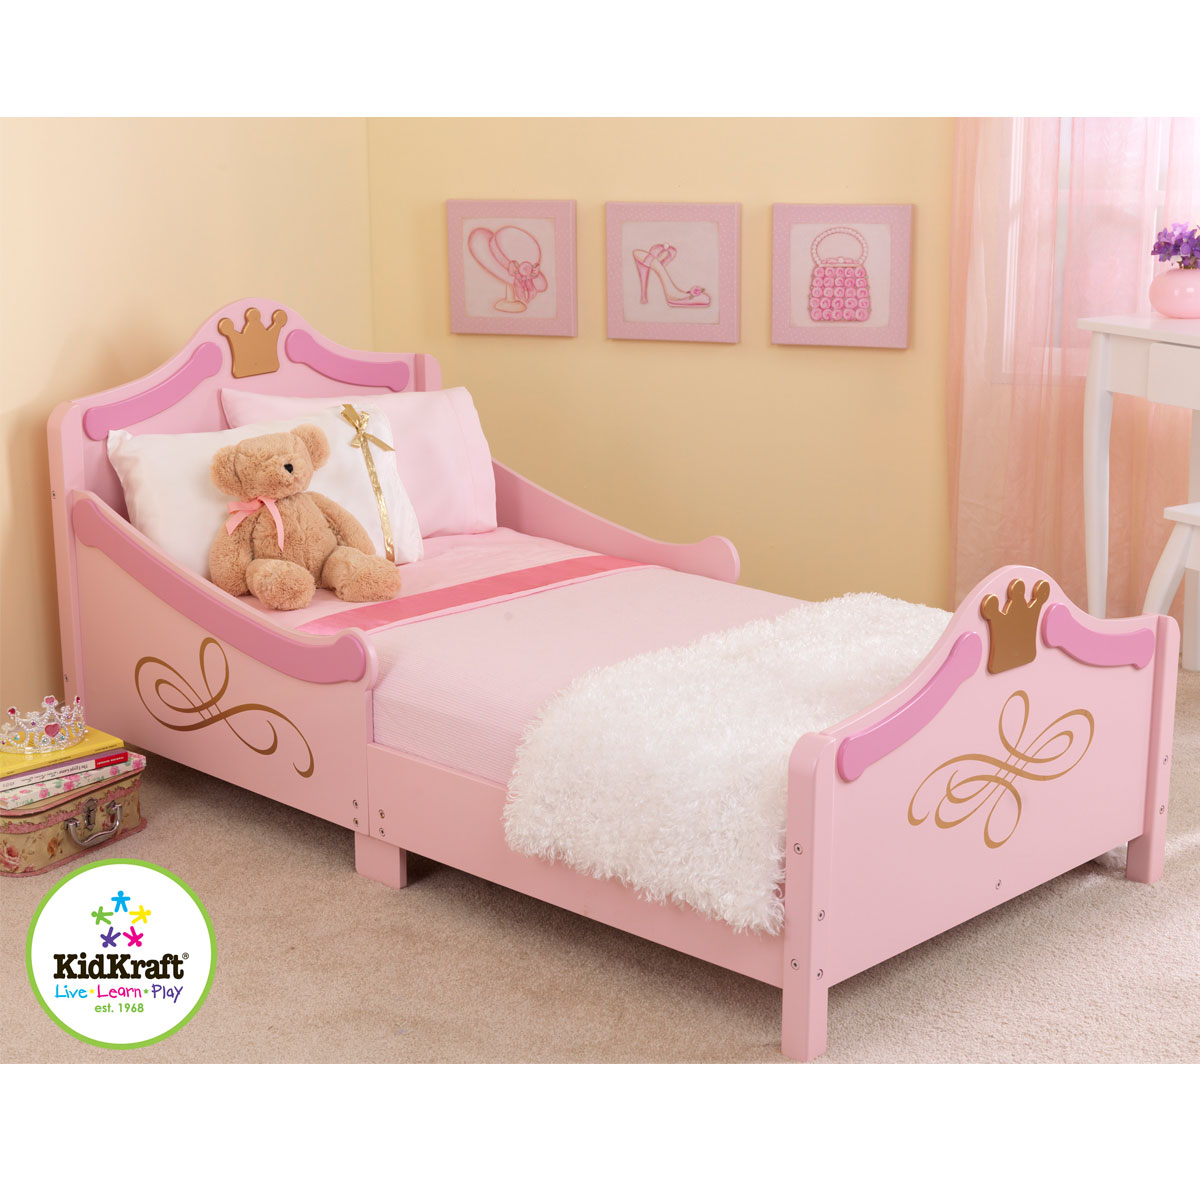 kidkraft kinderbett prinzessin 76139 solides holz kinderbett. Black Bedroom Furniture Sets. Home Design Ideas